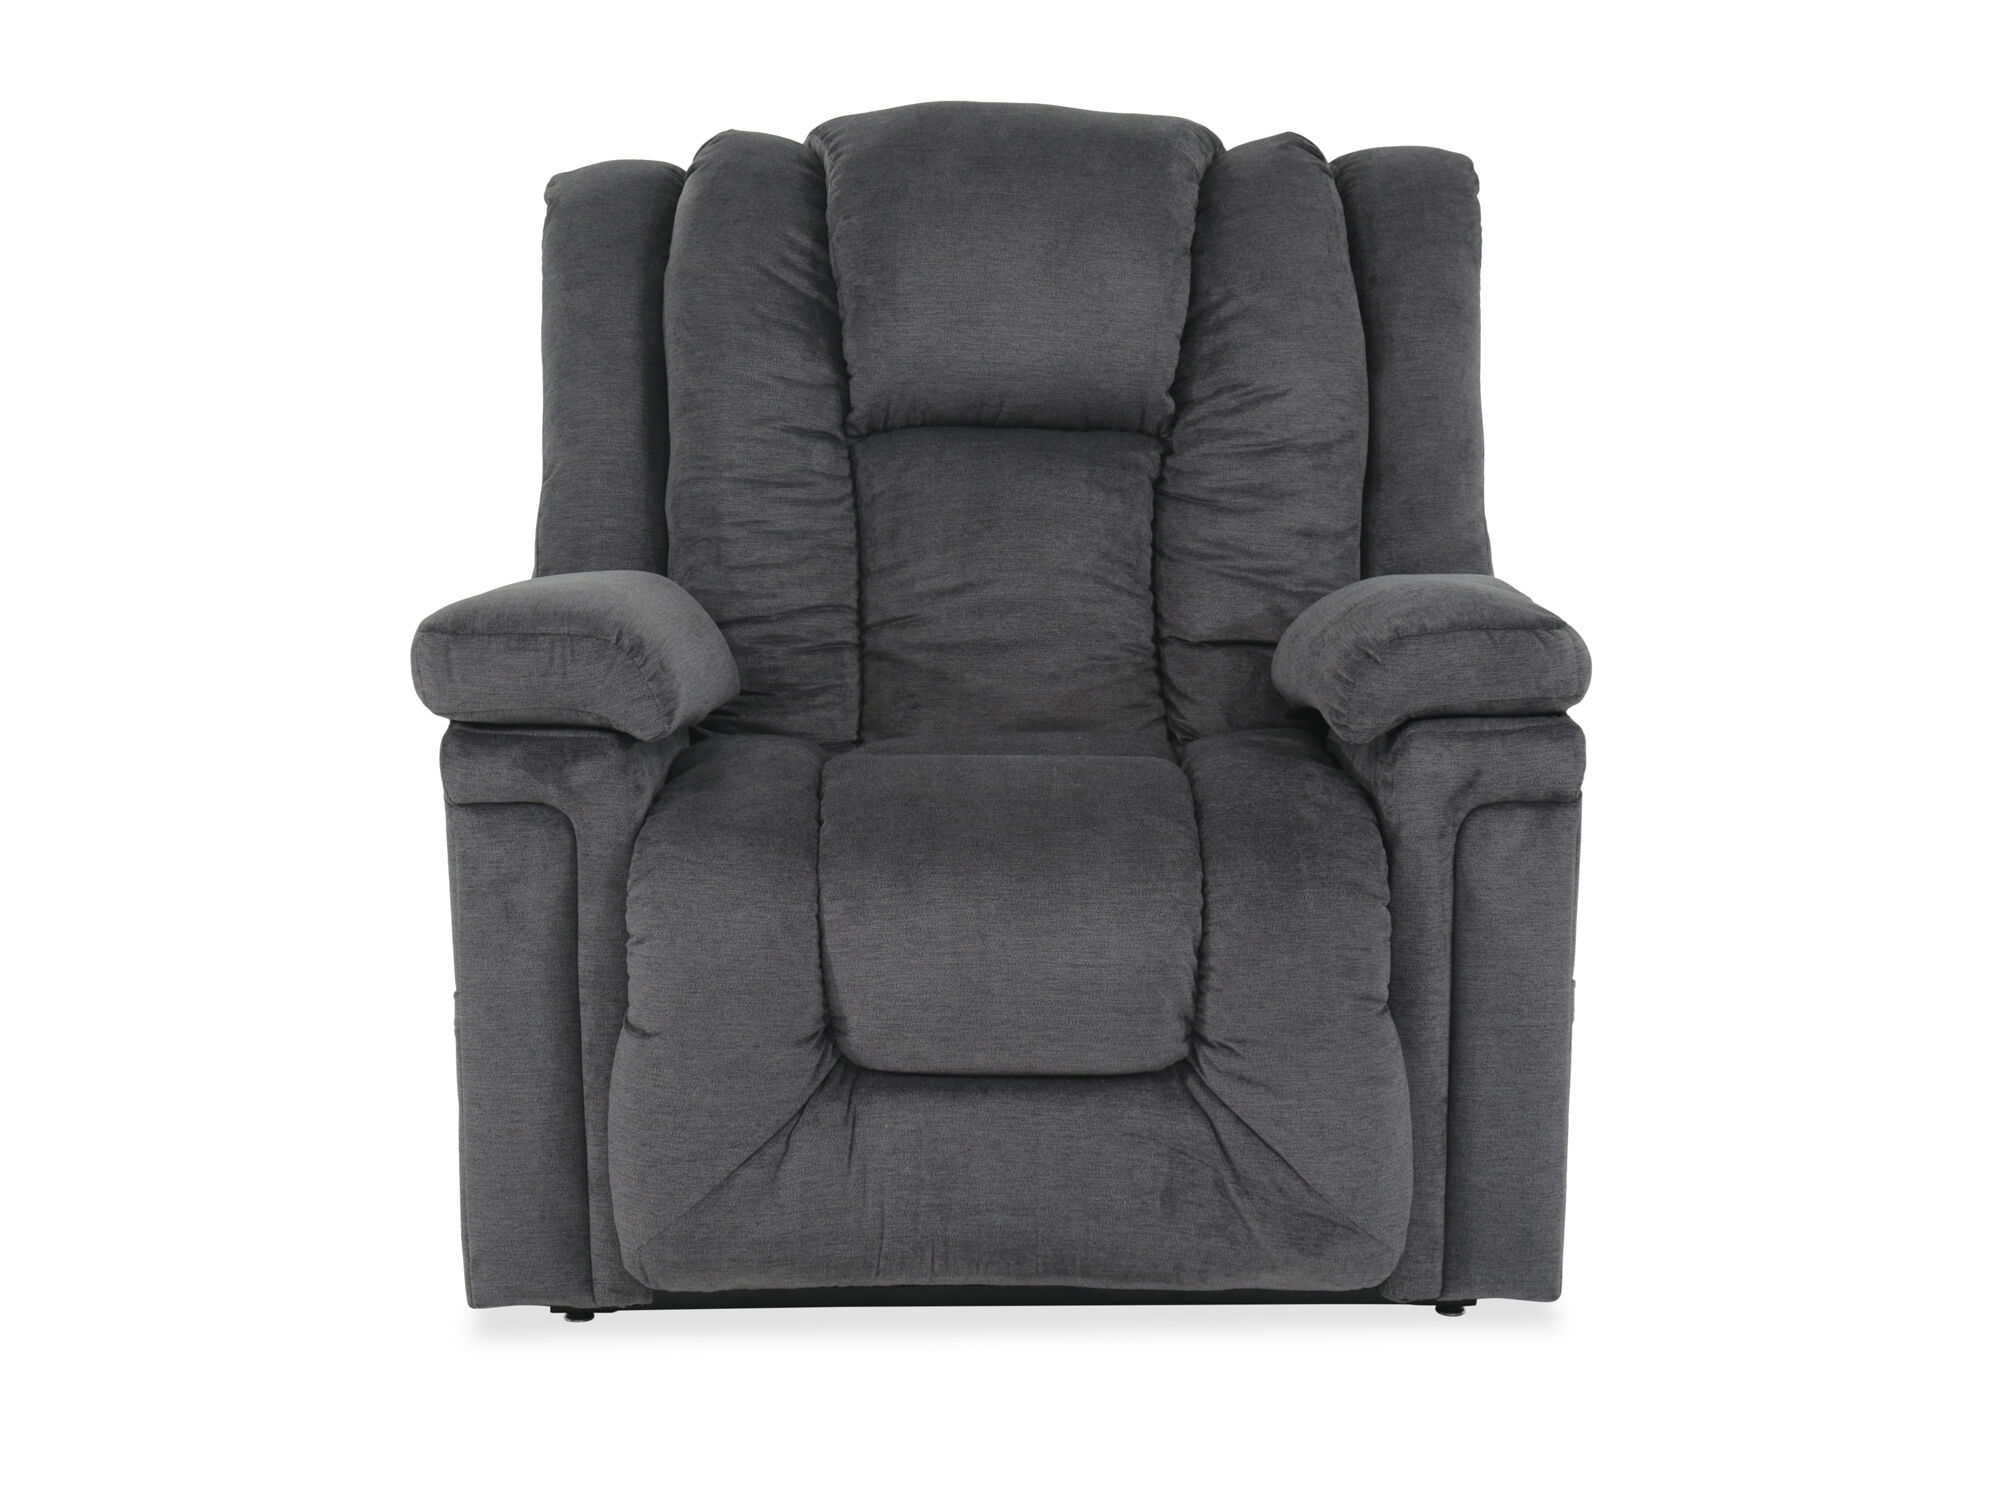 Gray Recliner Chair 49 Quot Leather Power Lift Recliner In Gray Mathis Brothers